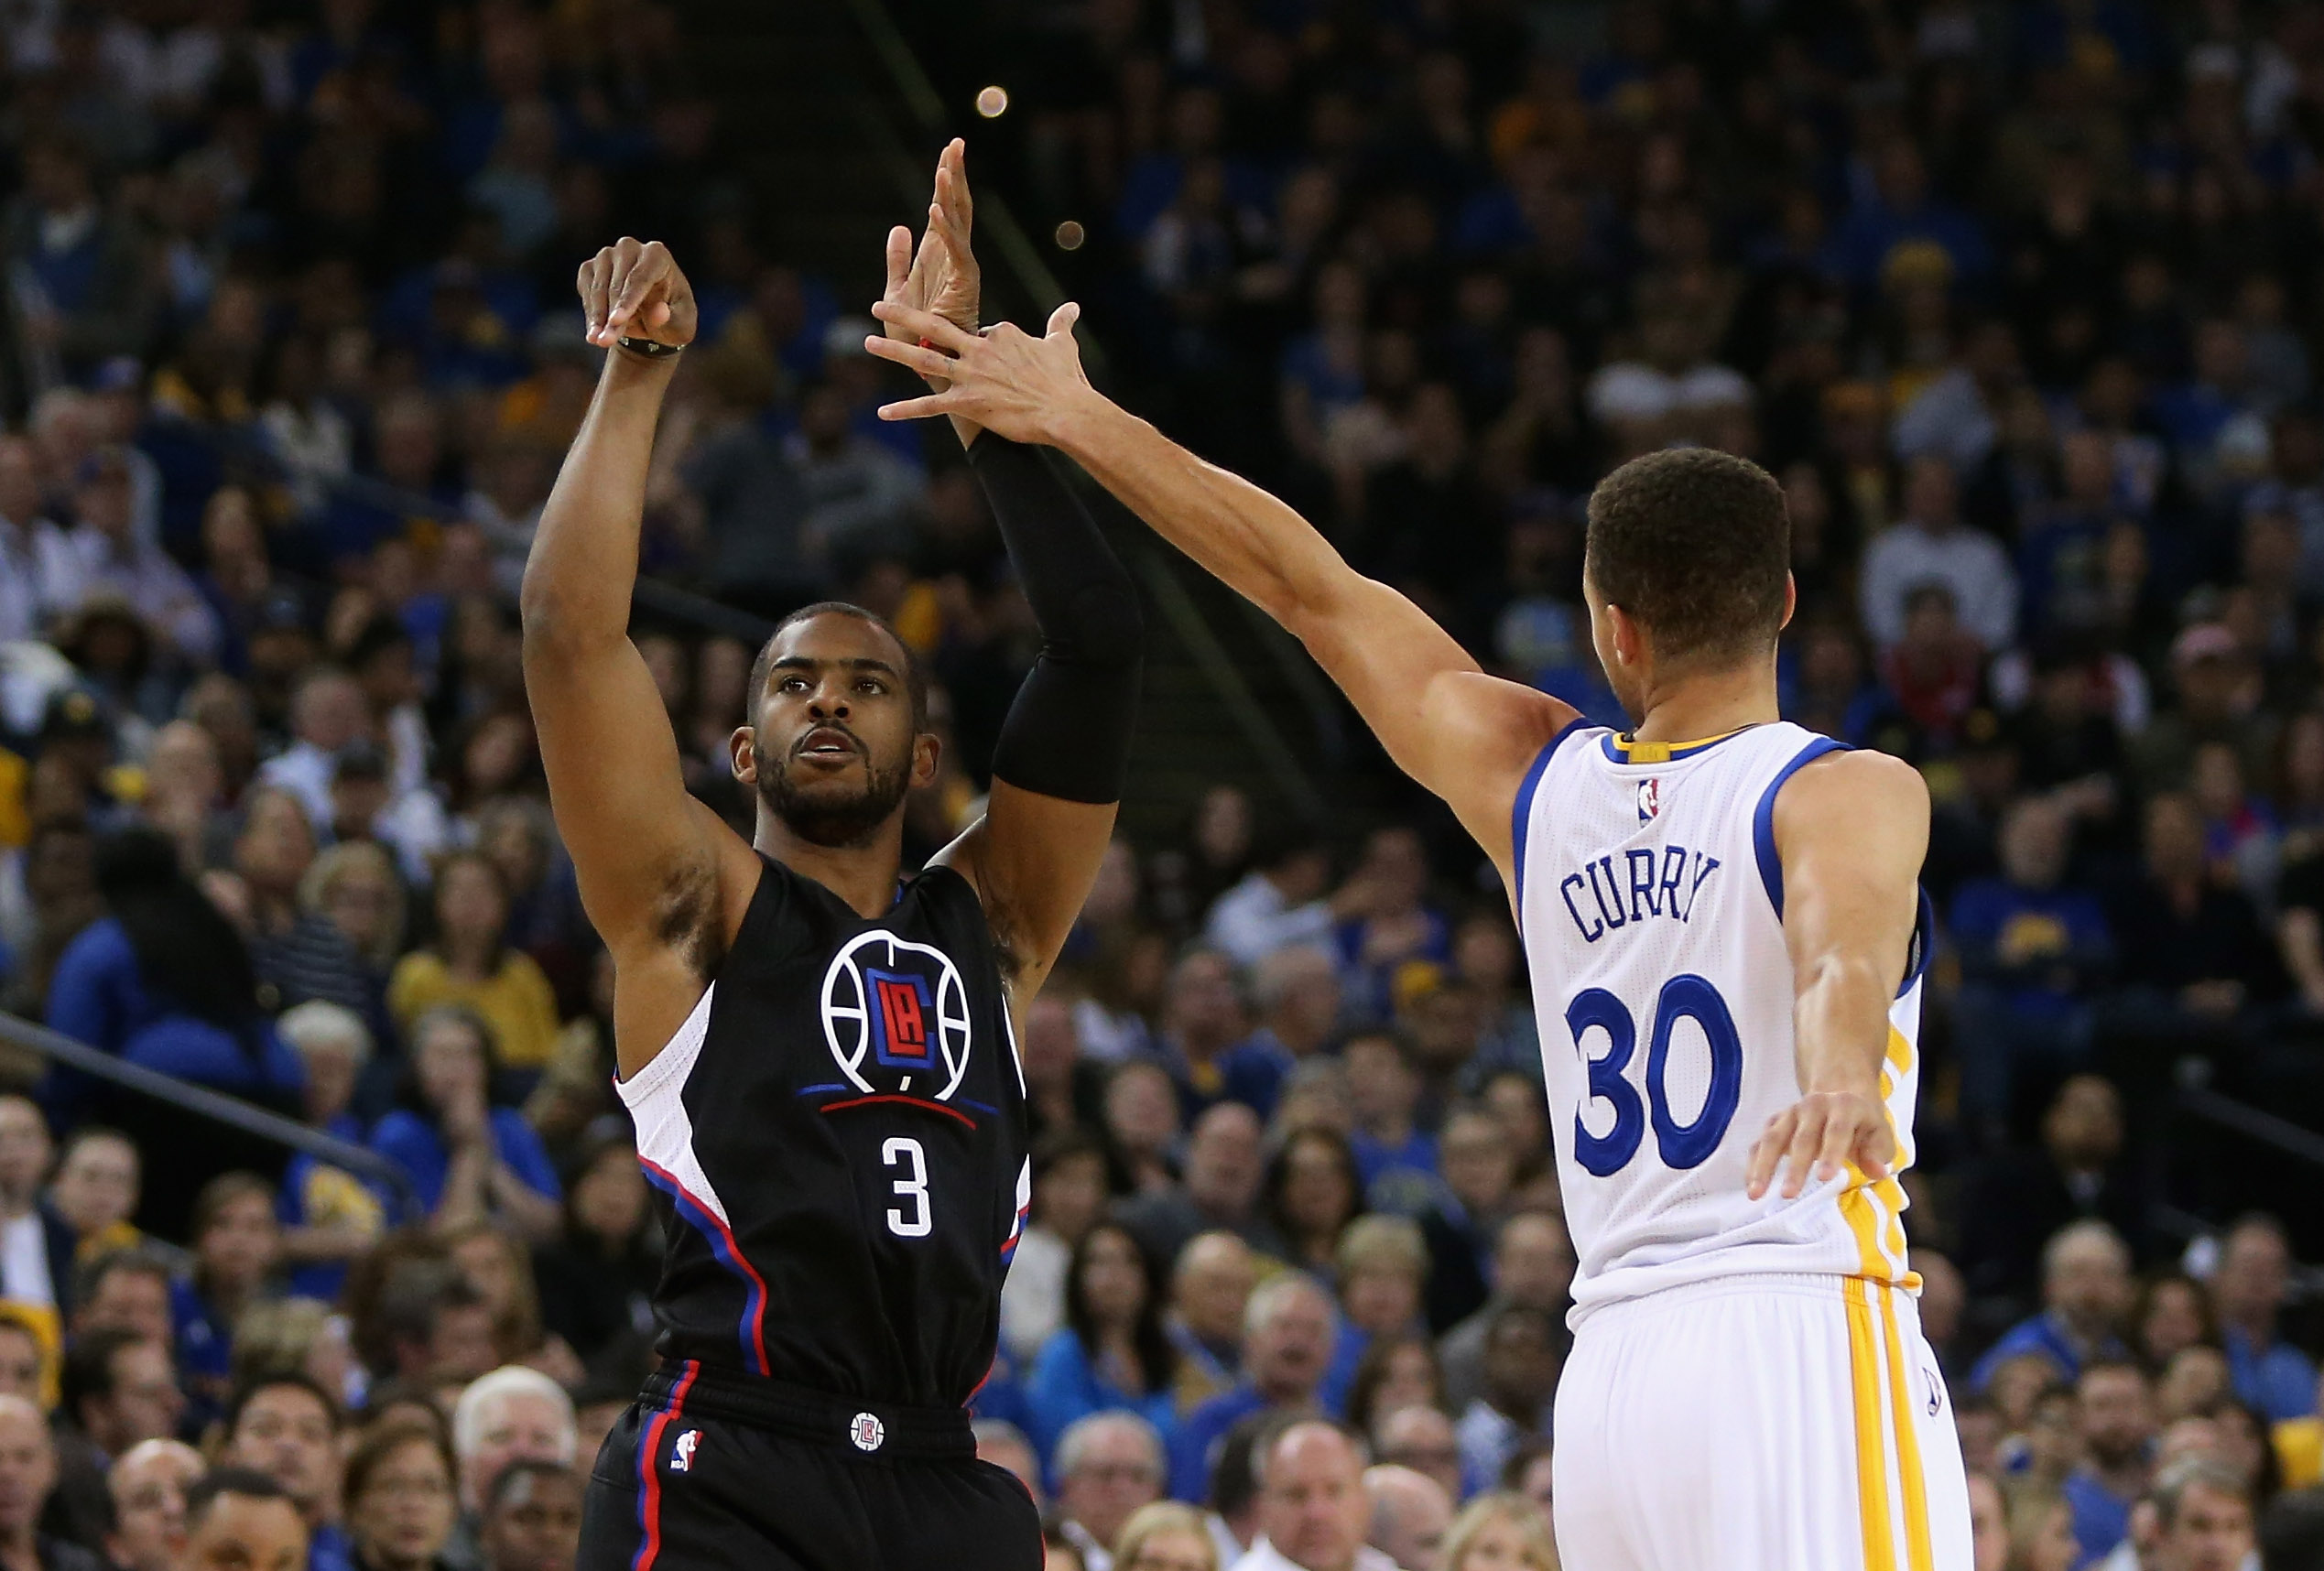 NBA Finals 2018 Odds: Houston Rockets Are Contenders After Chris Paul Trade, Warriors Still Favored